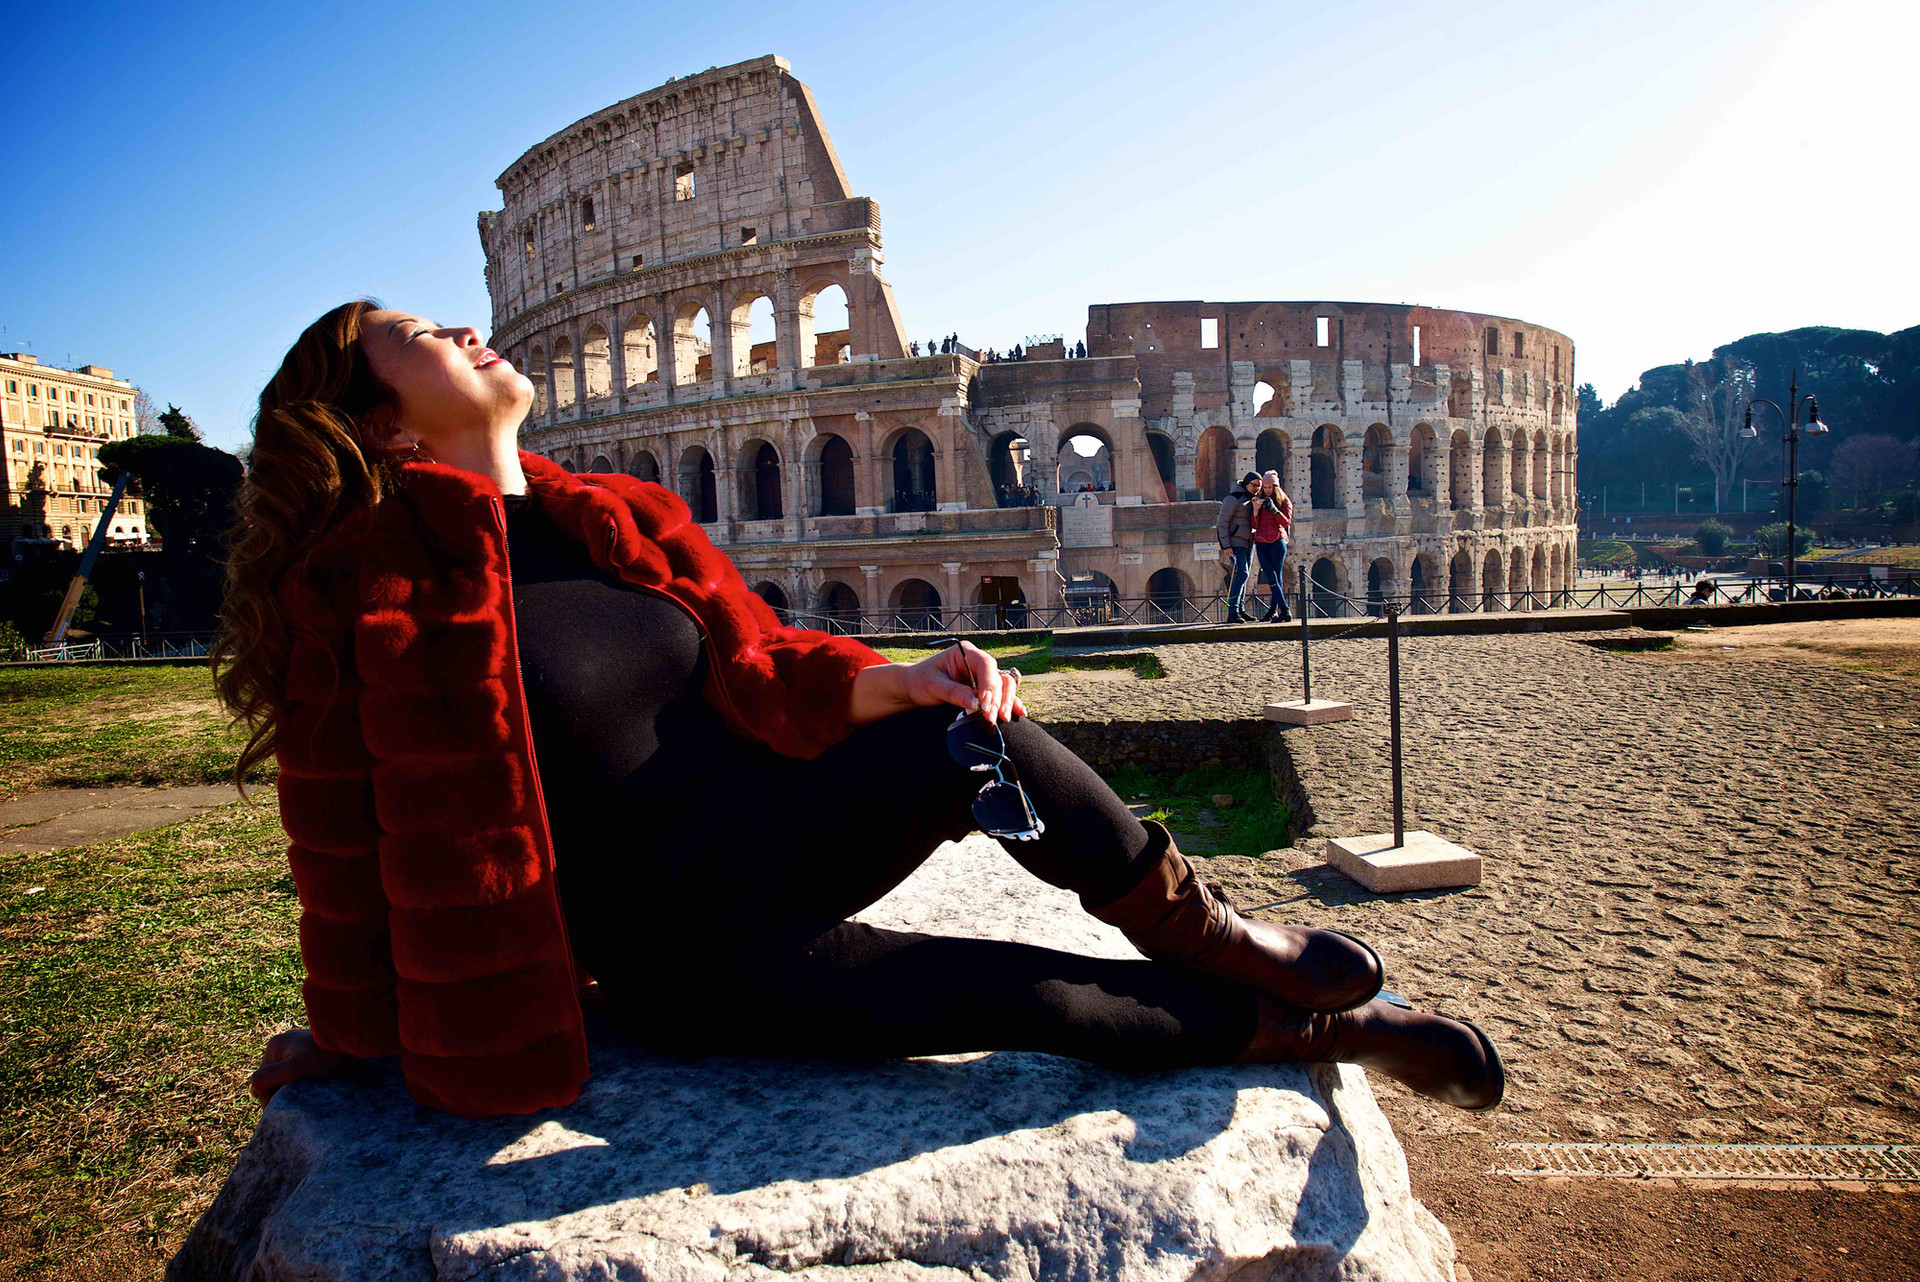 Enjoying the sun at Colosseum, Rome